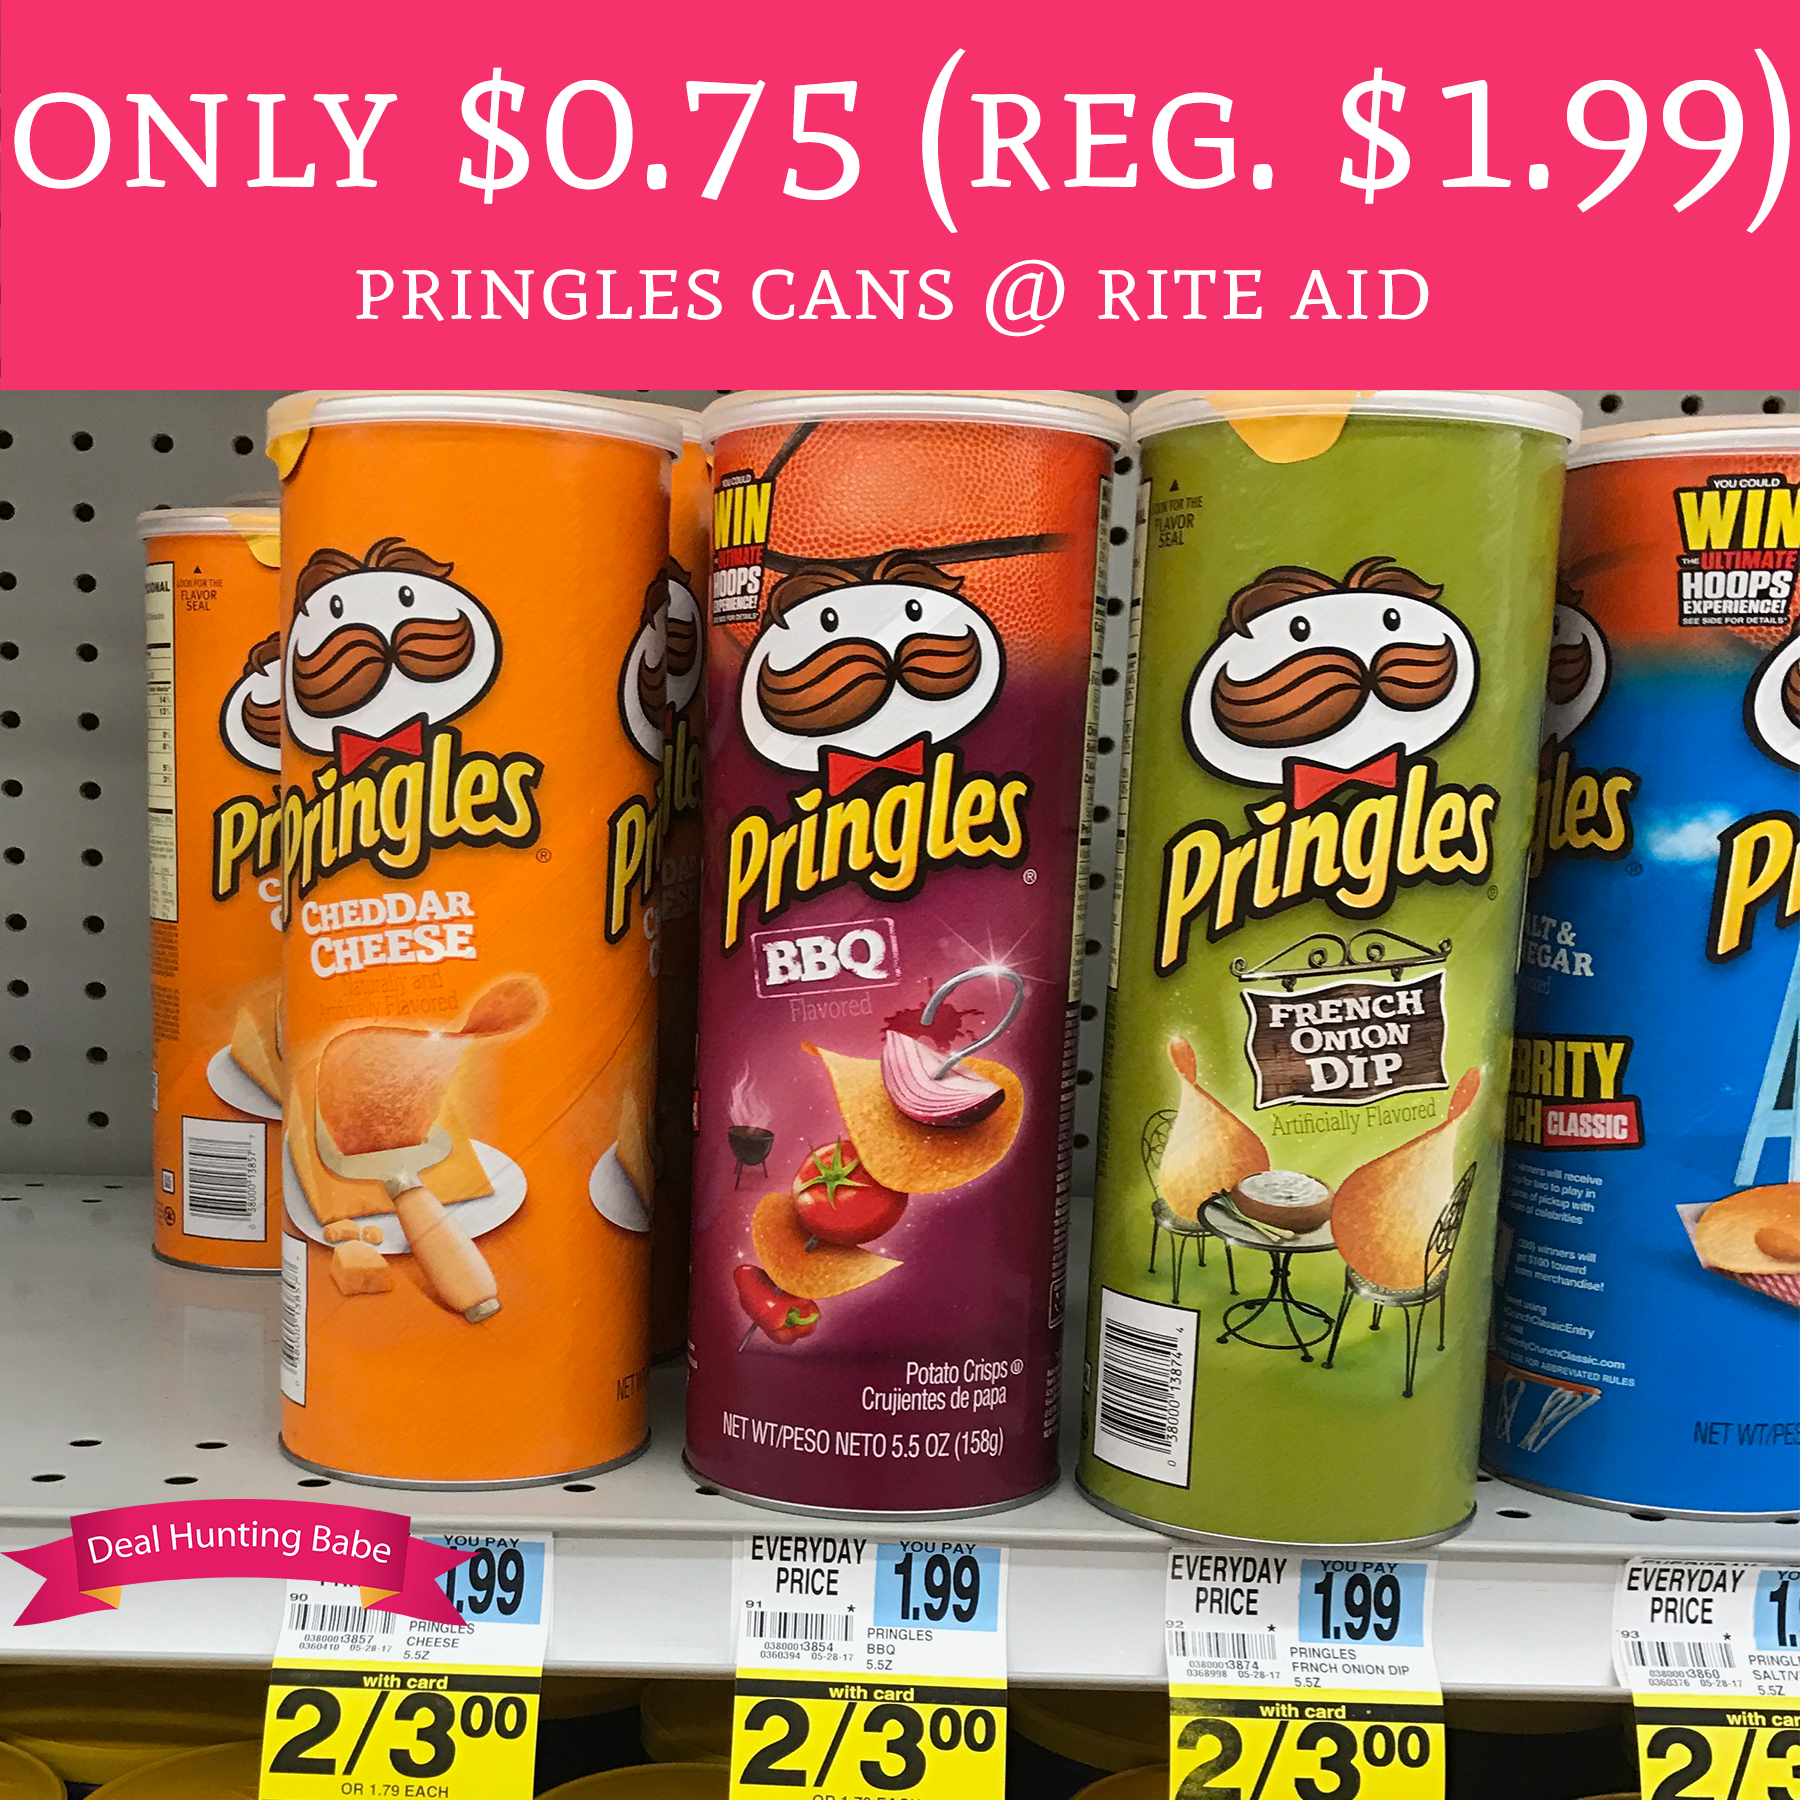 Rite Aid Stock Quote: Only $0.75 (Regular $1.99) Pringles Cans @ Rite Aid